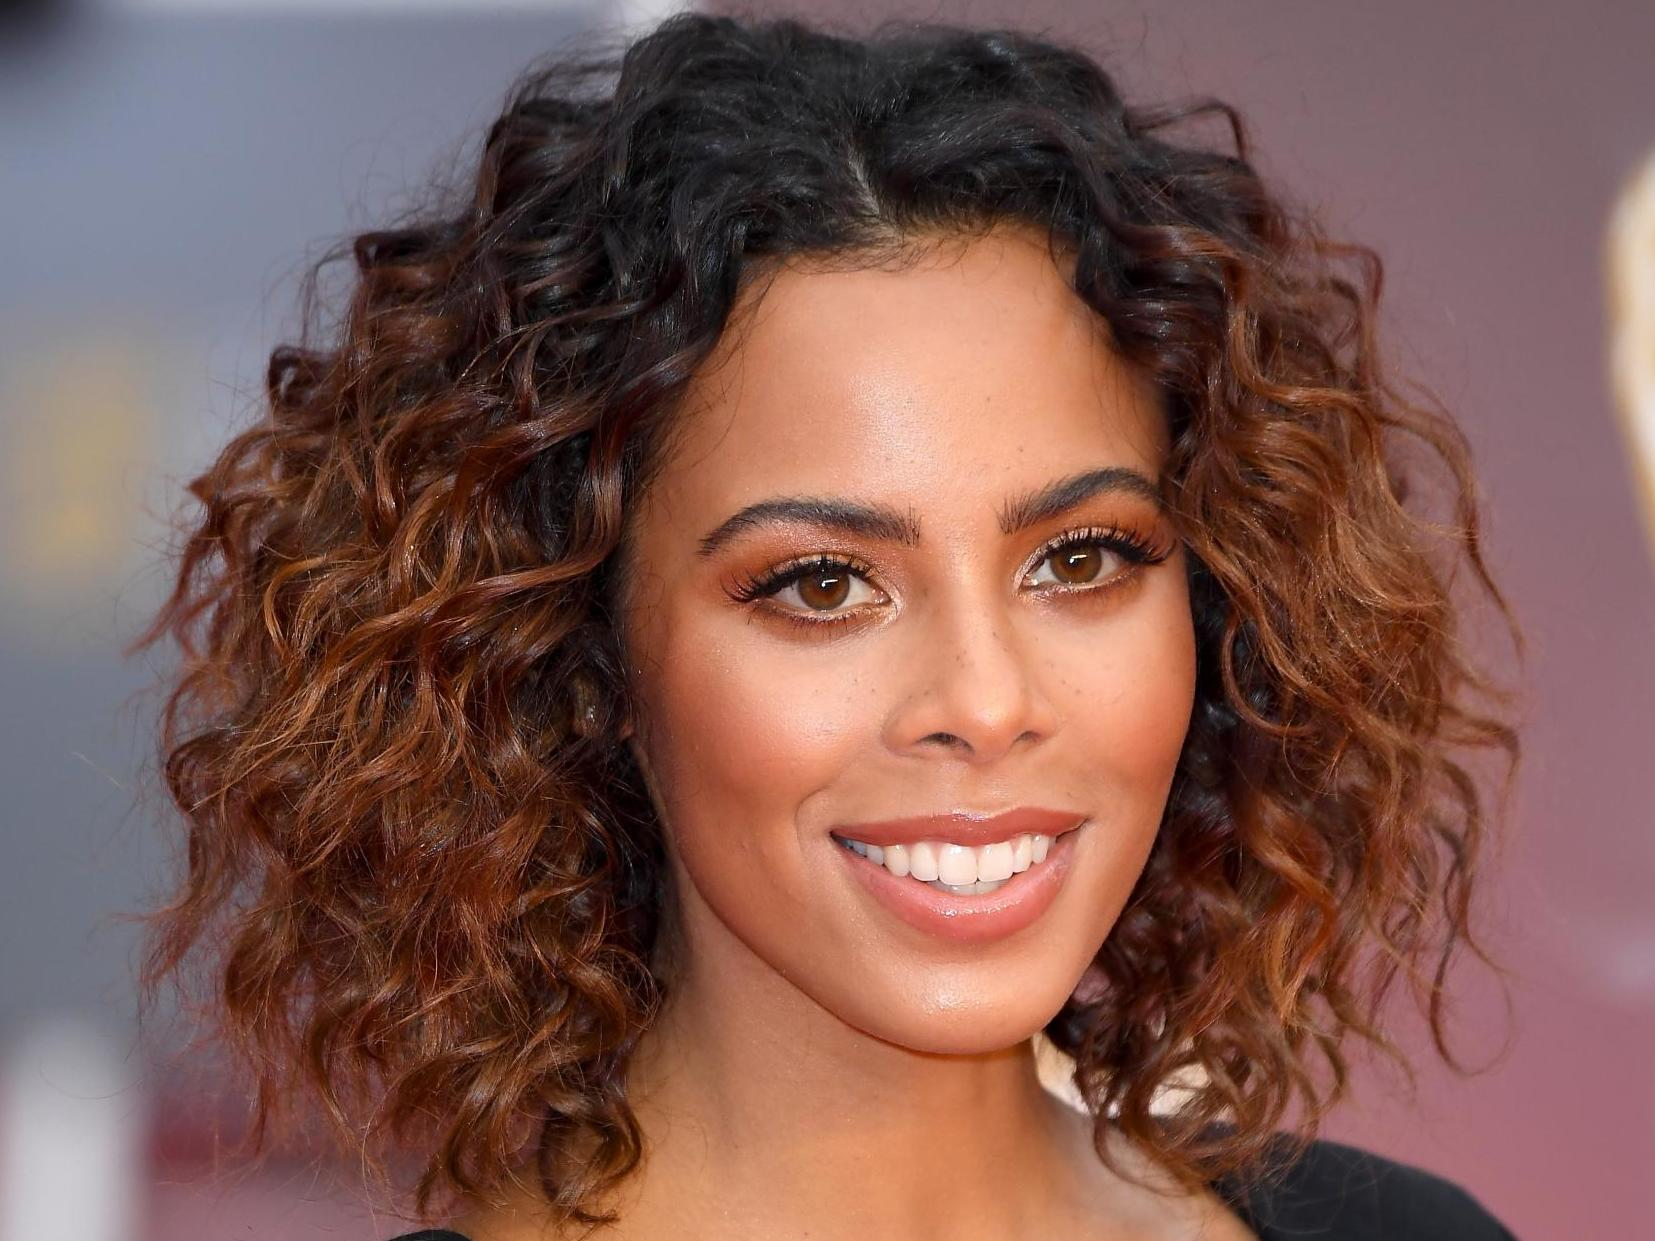 Rochelle Humes On Body Confidence I Don T Really Care About What People Think Any More The Independent